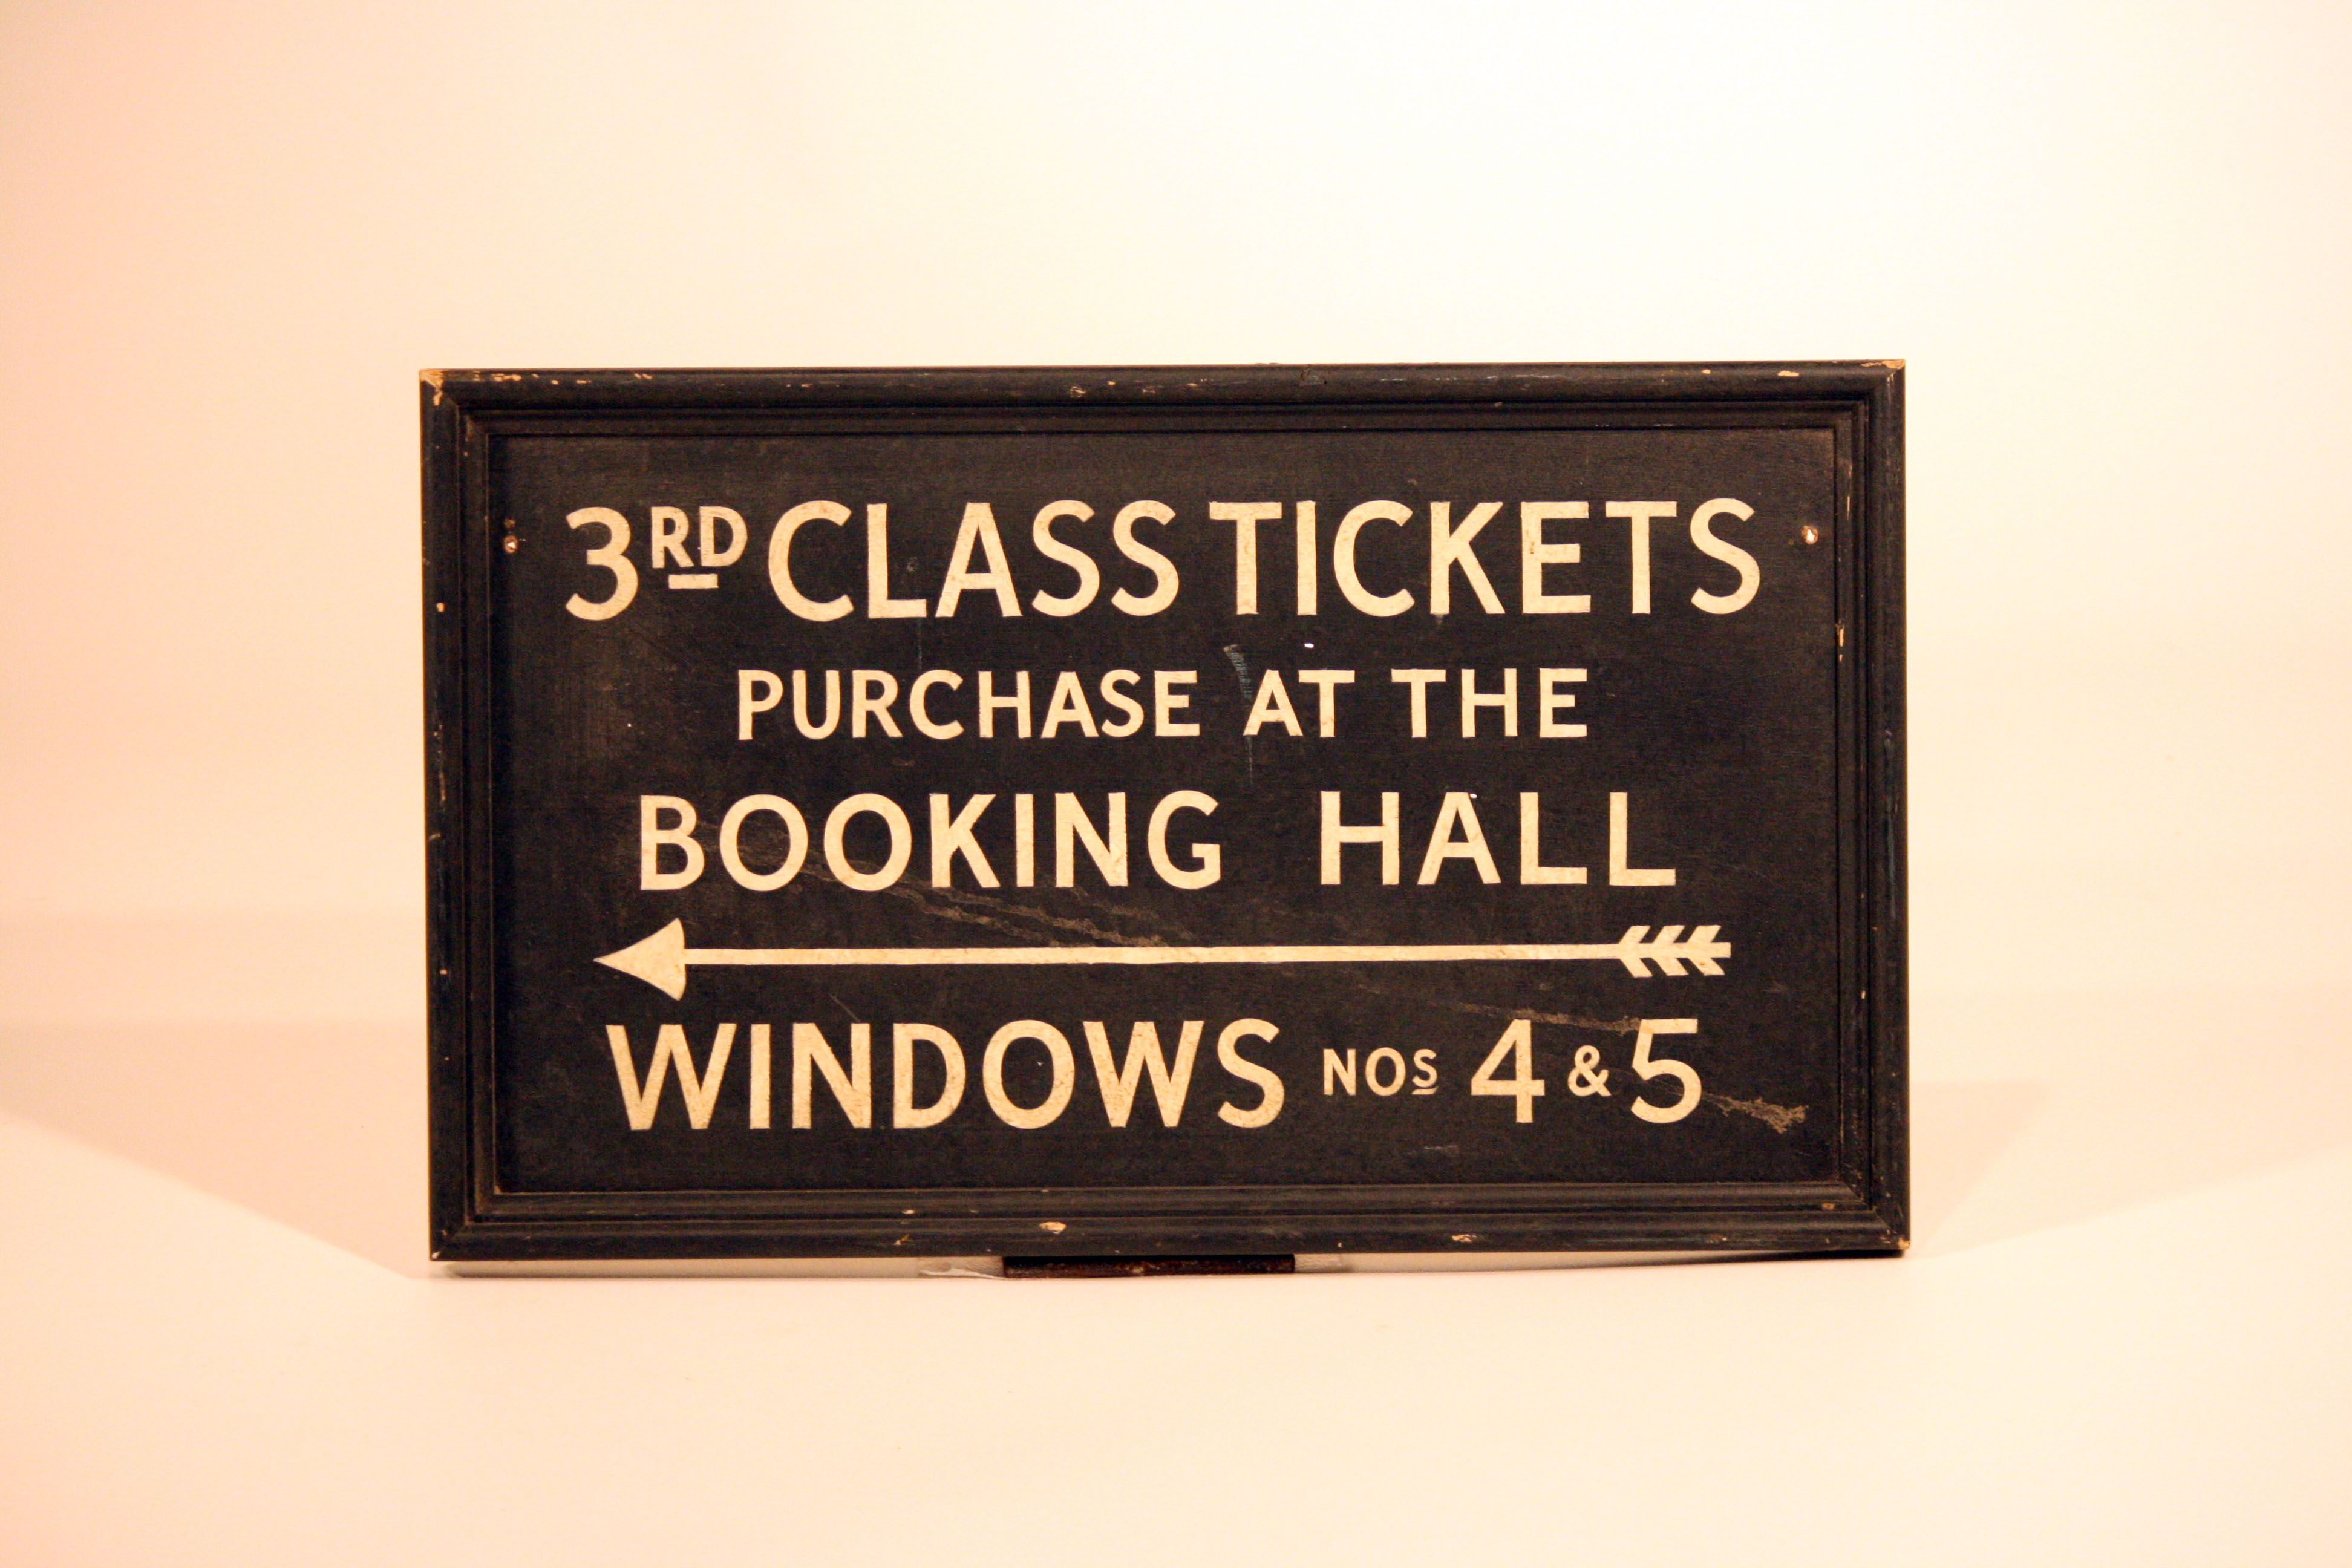 reproduction train tickets uk - Google Search